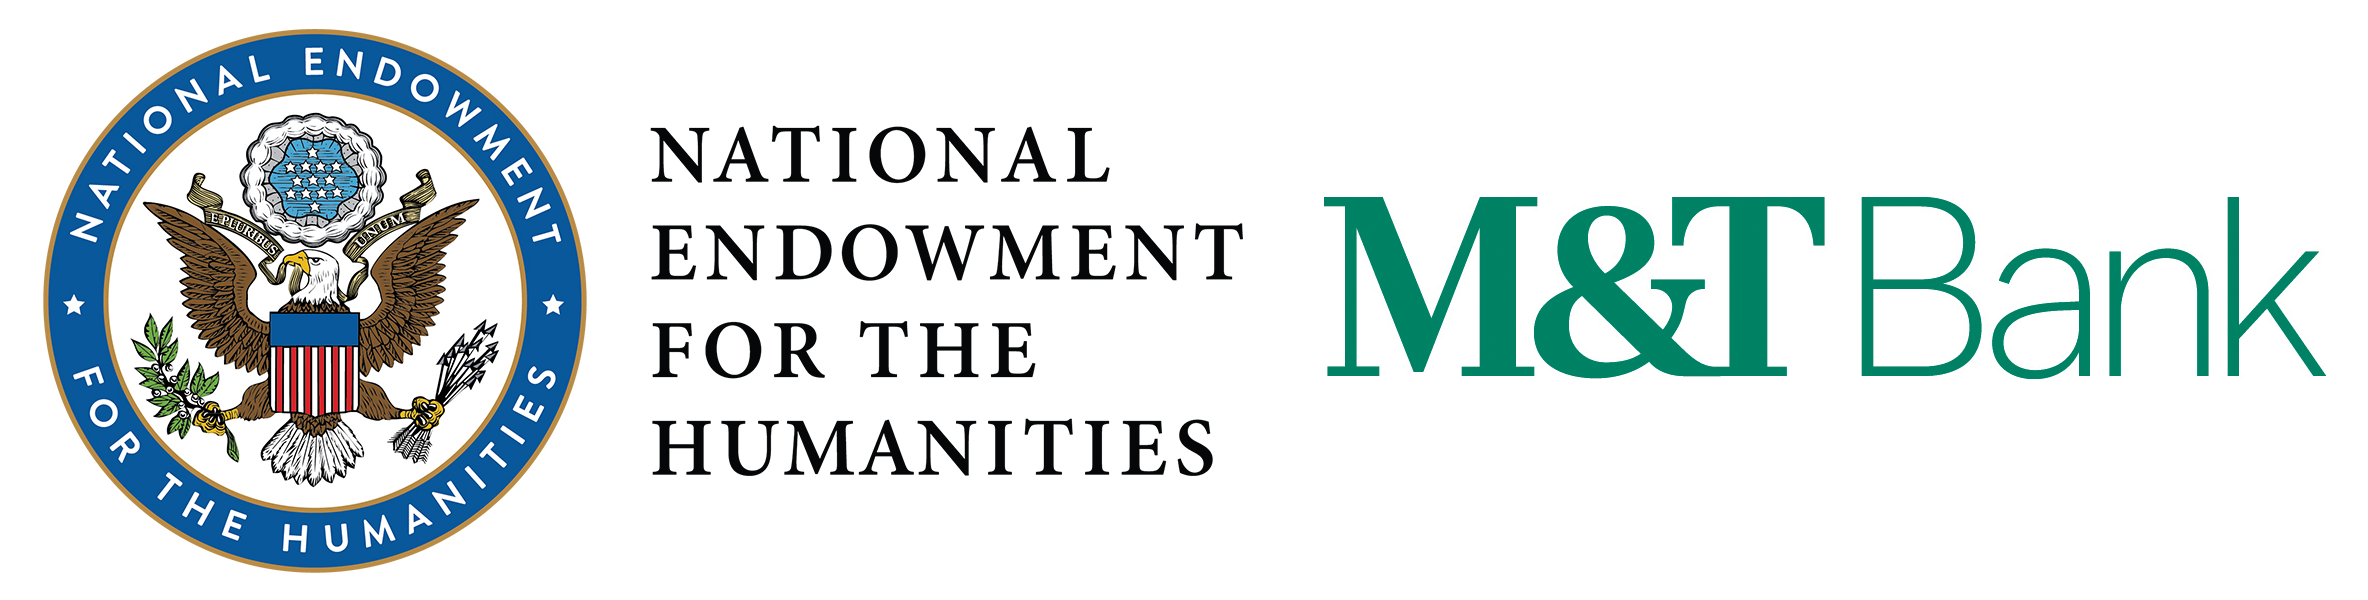 Logos for the National Endowment for the Humanities and M&T Bank